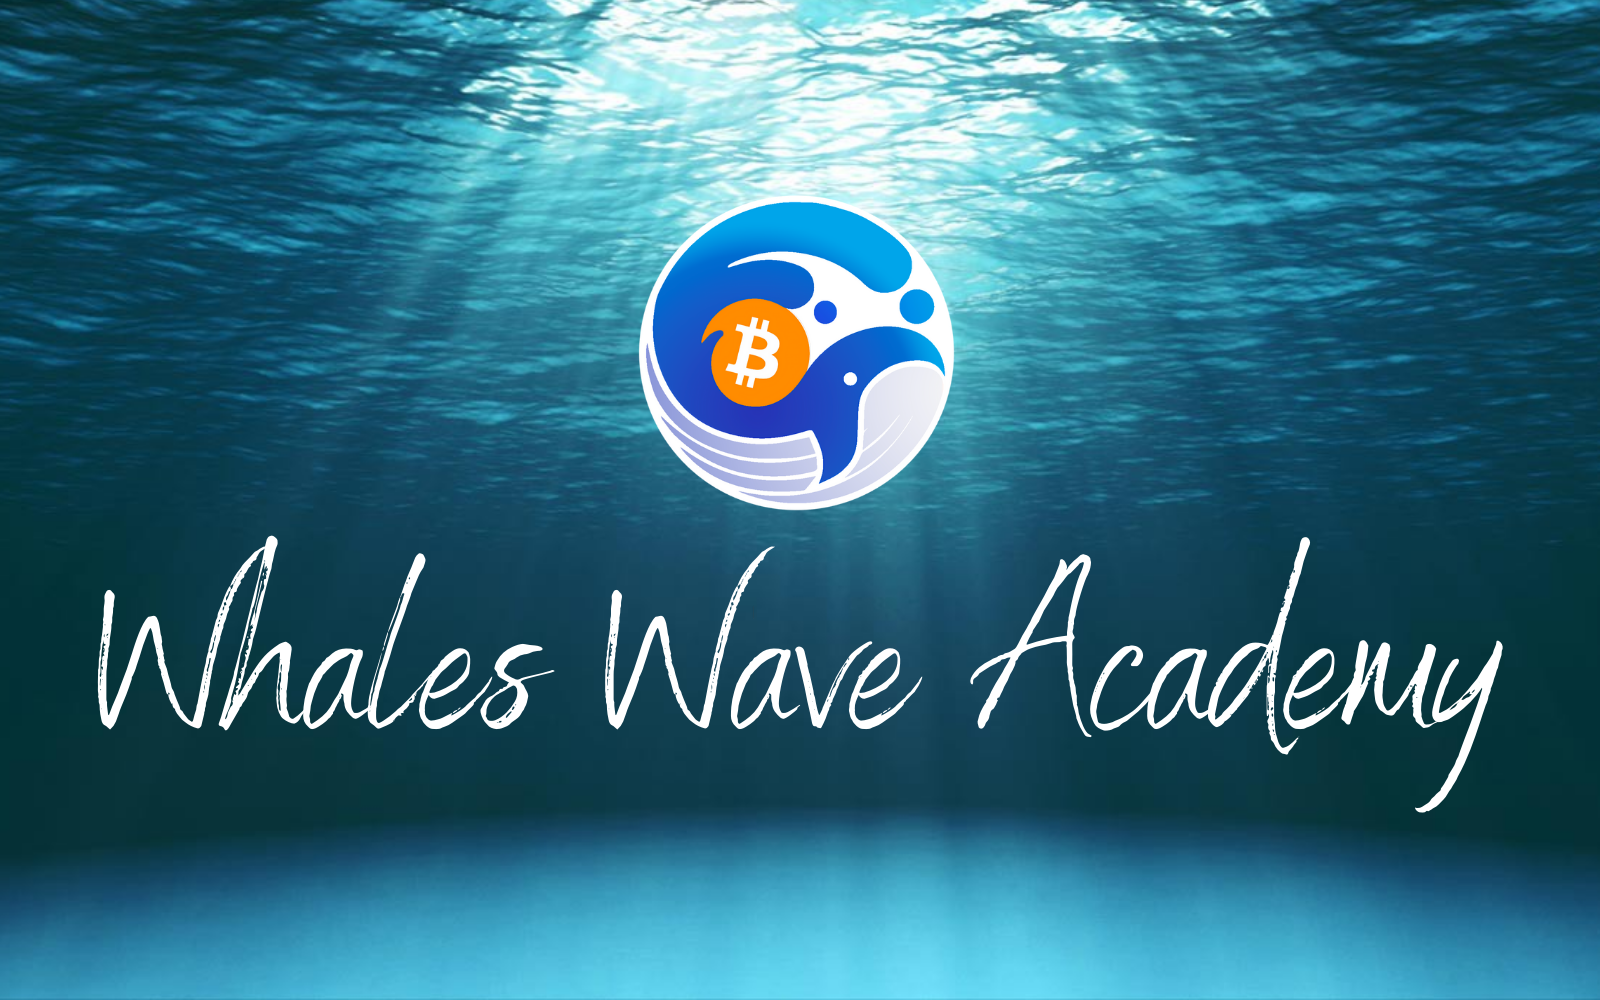 Programme Whales Wave Academy